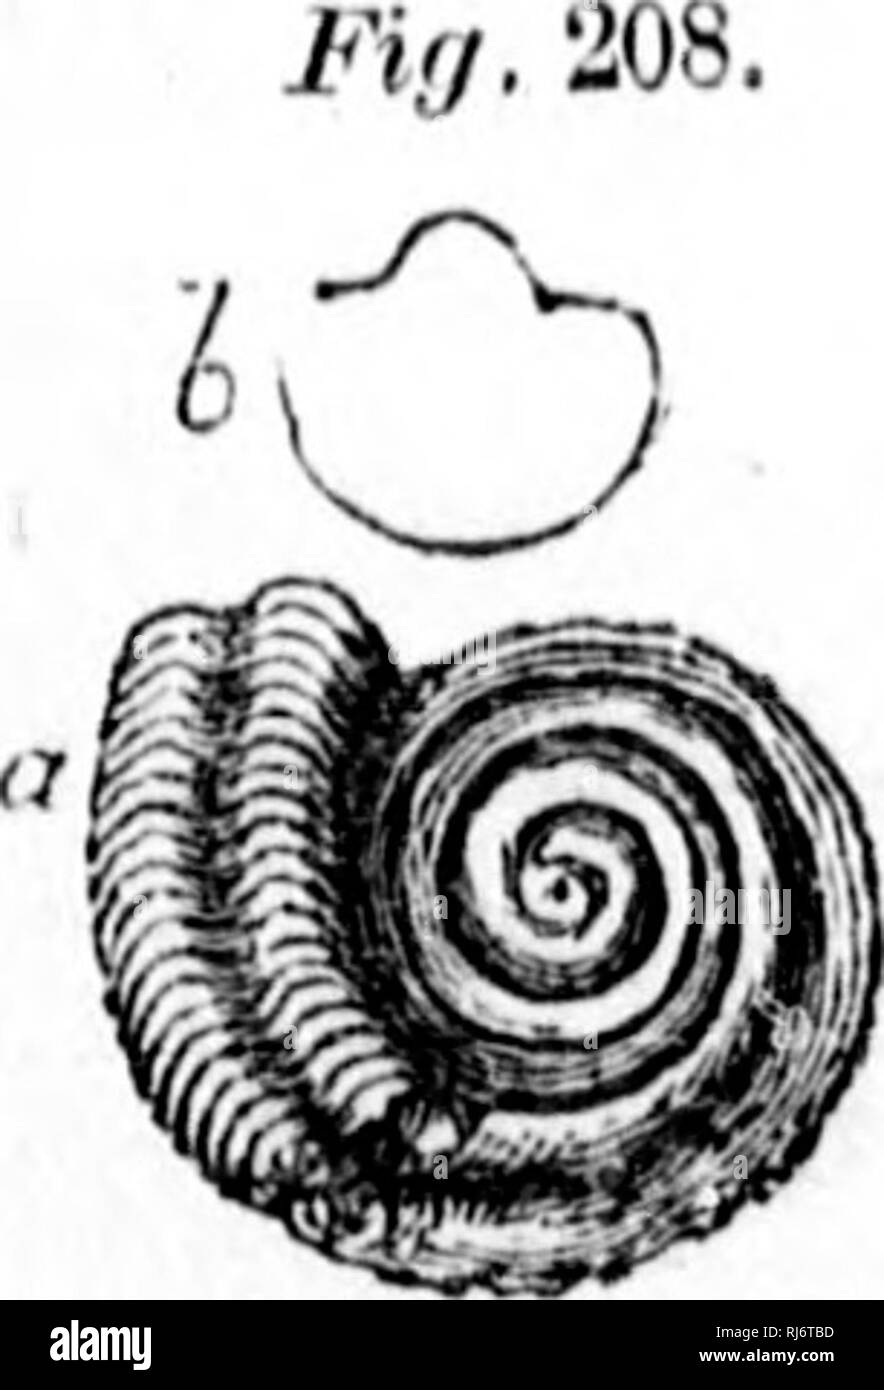 . Handbook of zoology [microform] : with examples from Canadian species, recent and fossil :. Zoology; Invertebrates; Zoologie; Invertébrés. 184. Fleukotomauia bybillina, IJilliiiRK,—M. Silurian. («) Sculpture ami notch. The genera Loxonema and Euomphahu also in- lude fossils of uncertain affinities. Yii3^ 208, 209.. Fir/. 209. 208. EuOMPHALUS EXouTivi-9, Dii,,—Carboniferou*. 209. LoiO>'BMA AcuTULA, Dn., Do.—Magnilied.. Please note that these images are extracted from scanned page images that may have been digitally enhanced for readability - coloration and appearance of these illustration - Stock Image